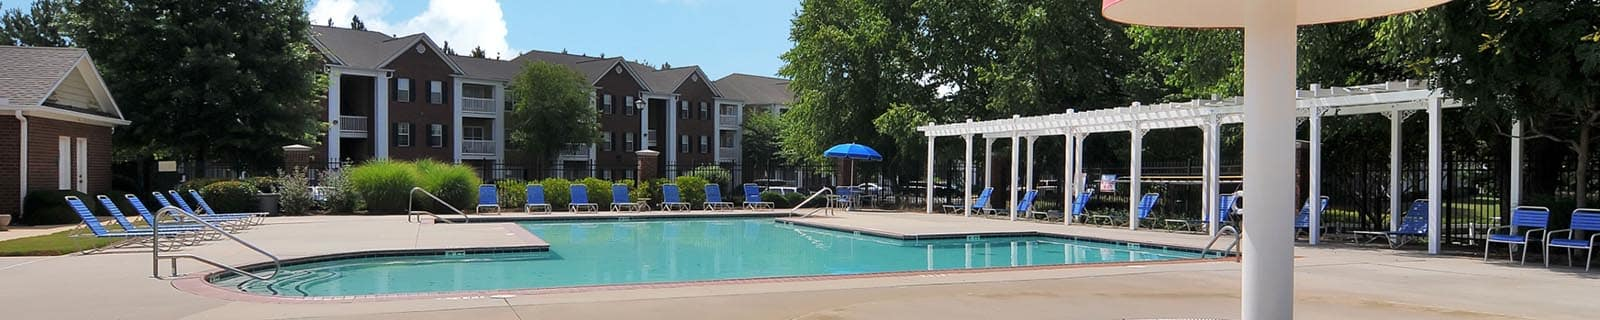 Read what residents of our Covington apartments have to say